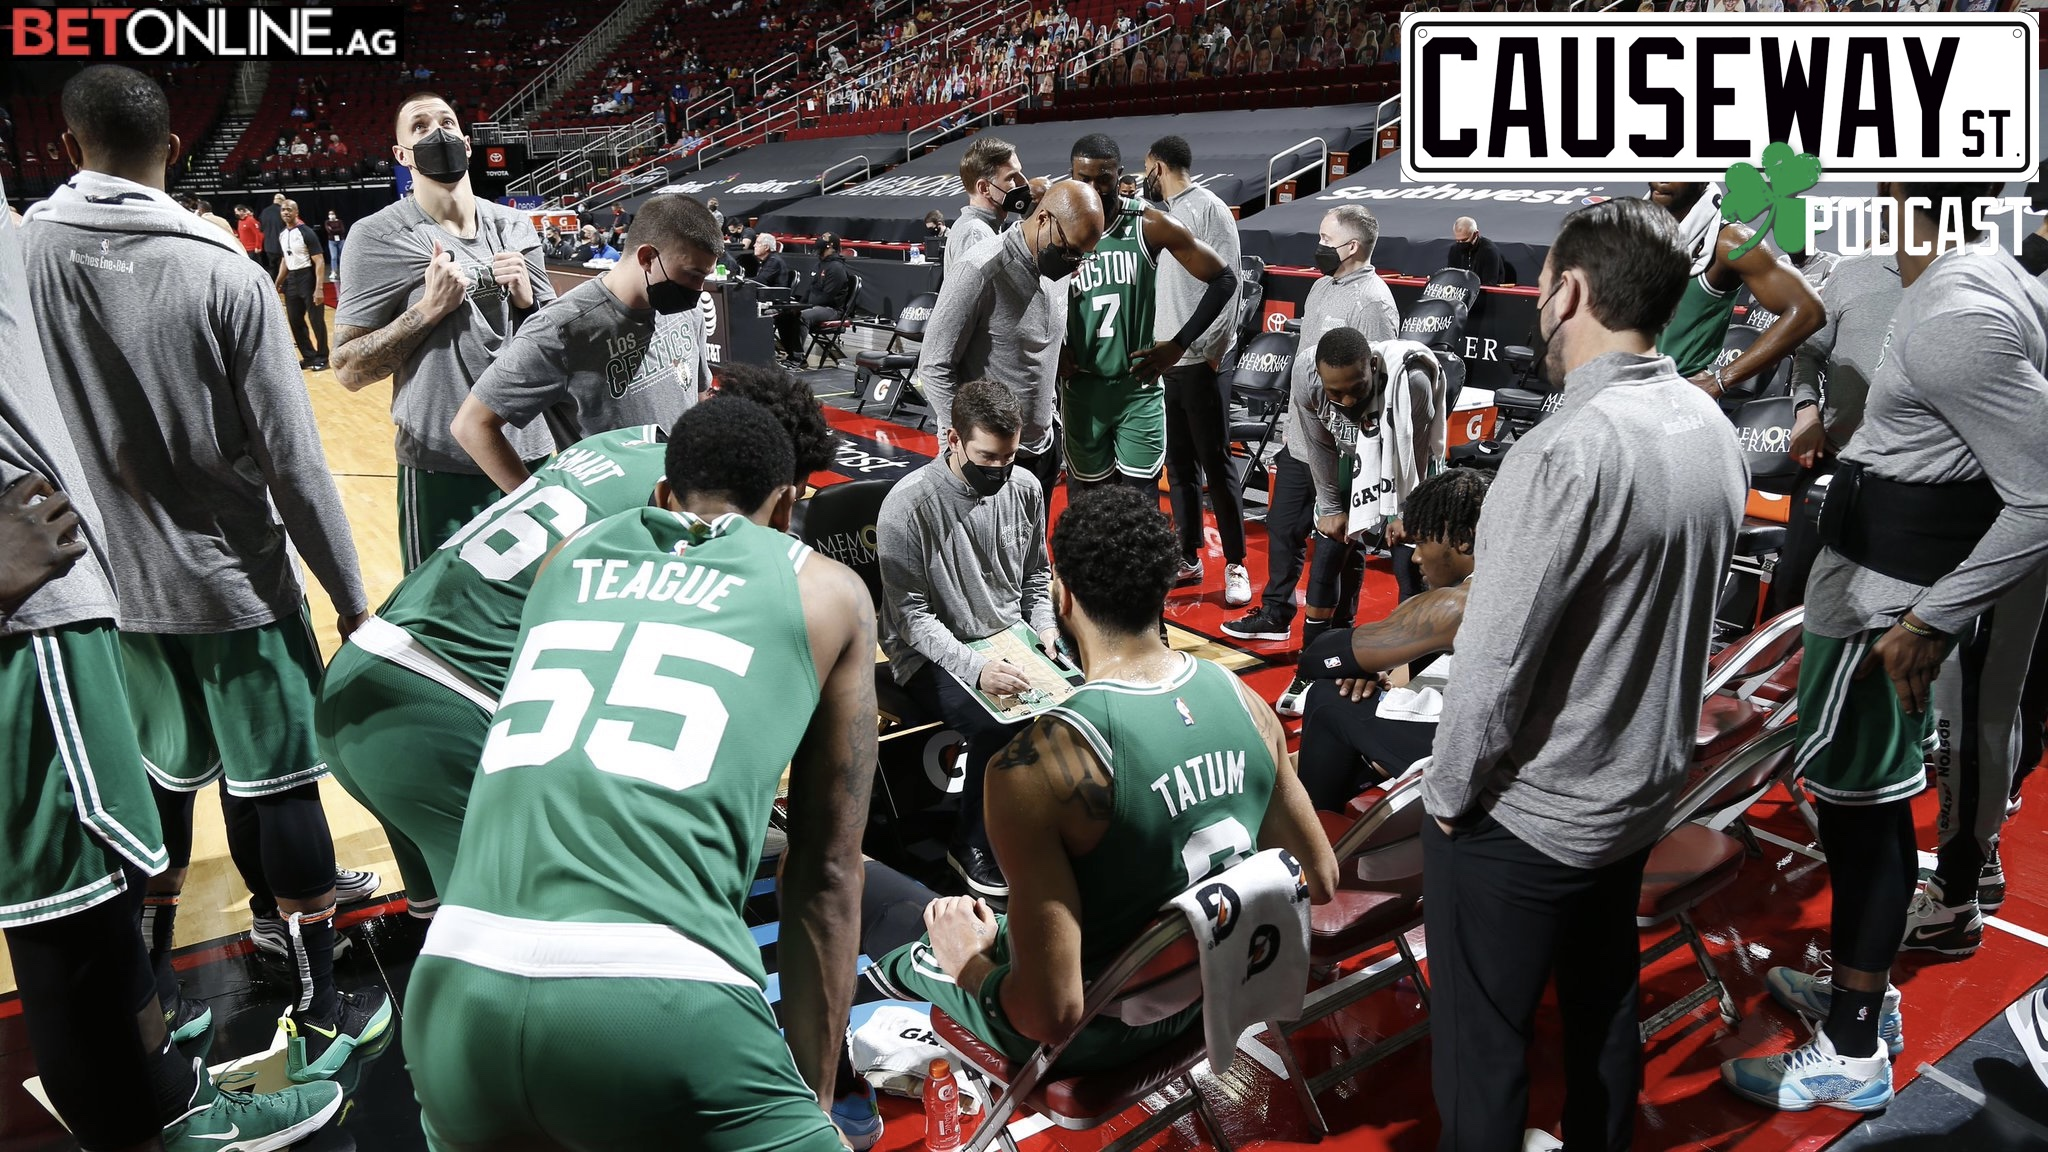 254: Current state of the Celtics